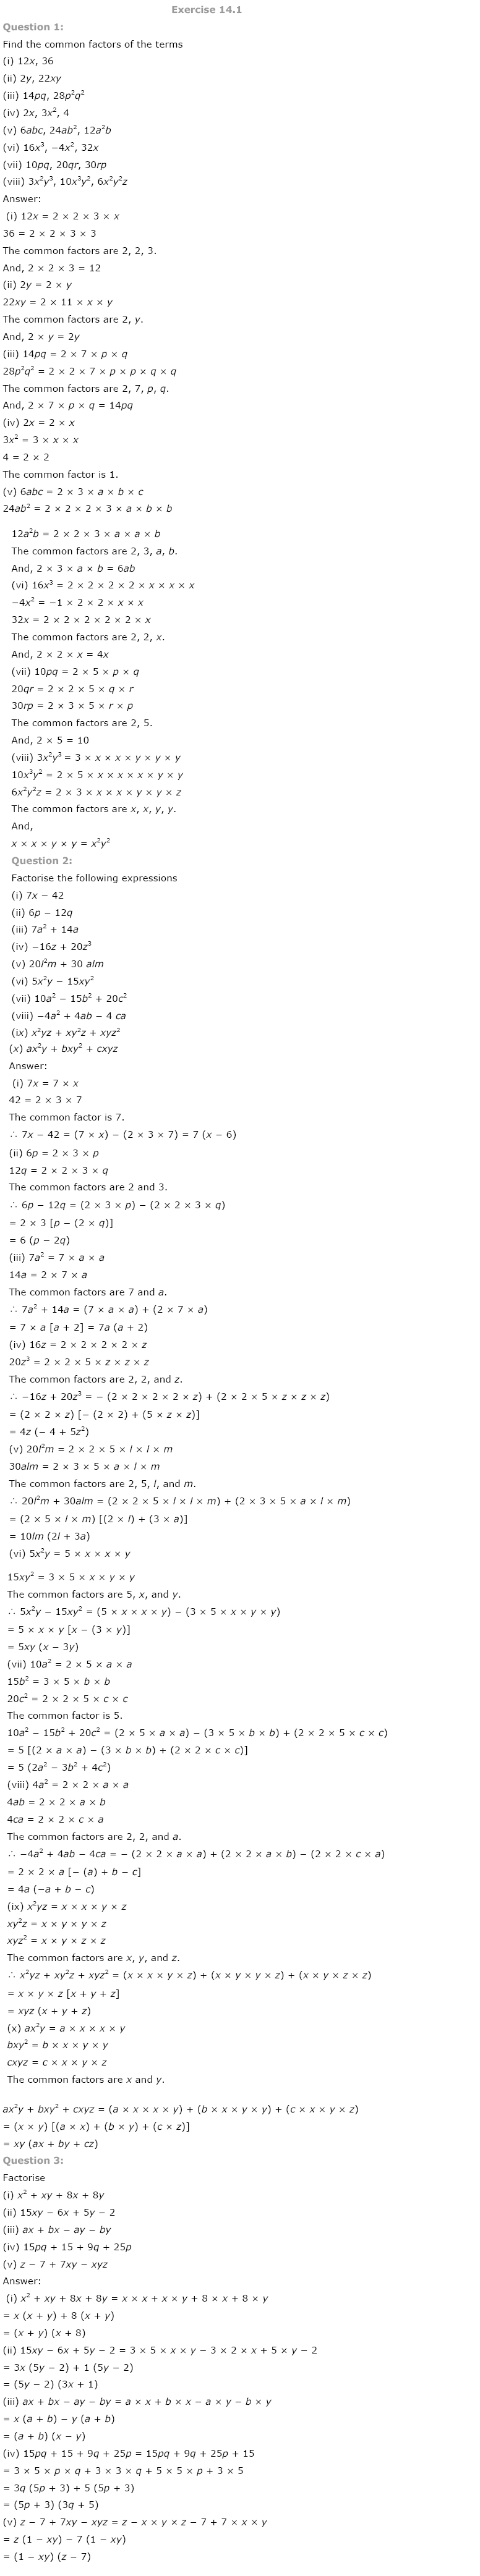 CBSE NCERT Class VIII (8th) | Mathematics, Factorisation, CBSE NCERT Solved Question Answer, CBSE NCERT Book Solutions for Class 8.